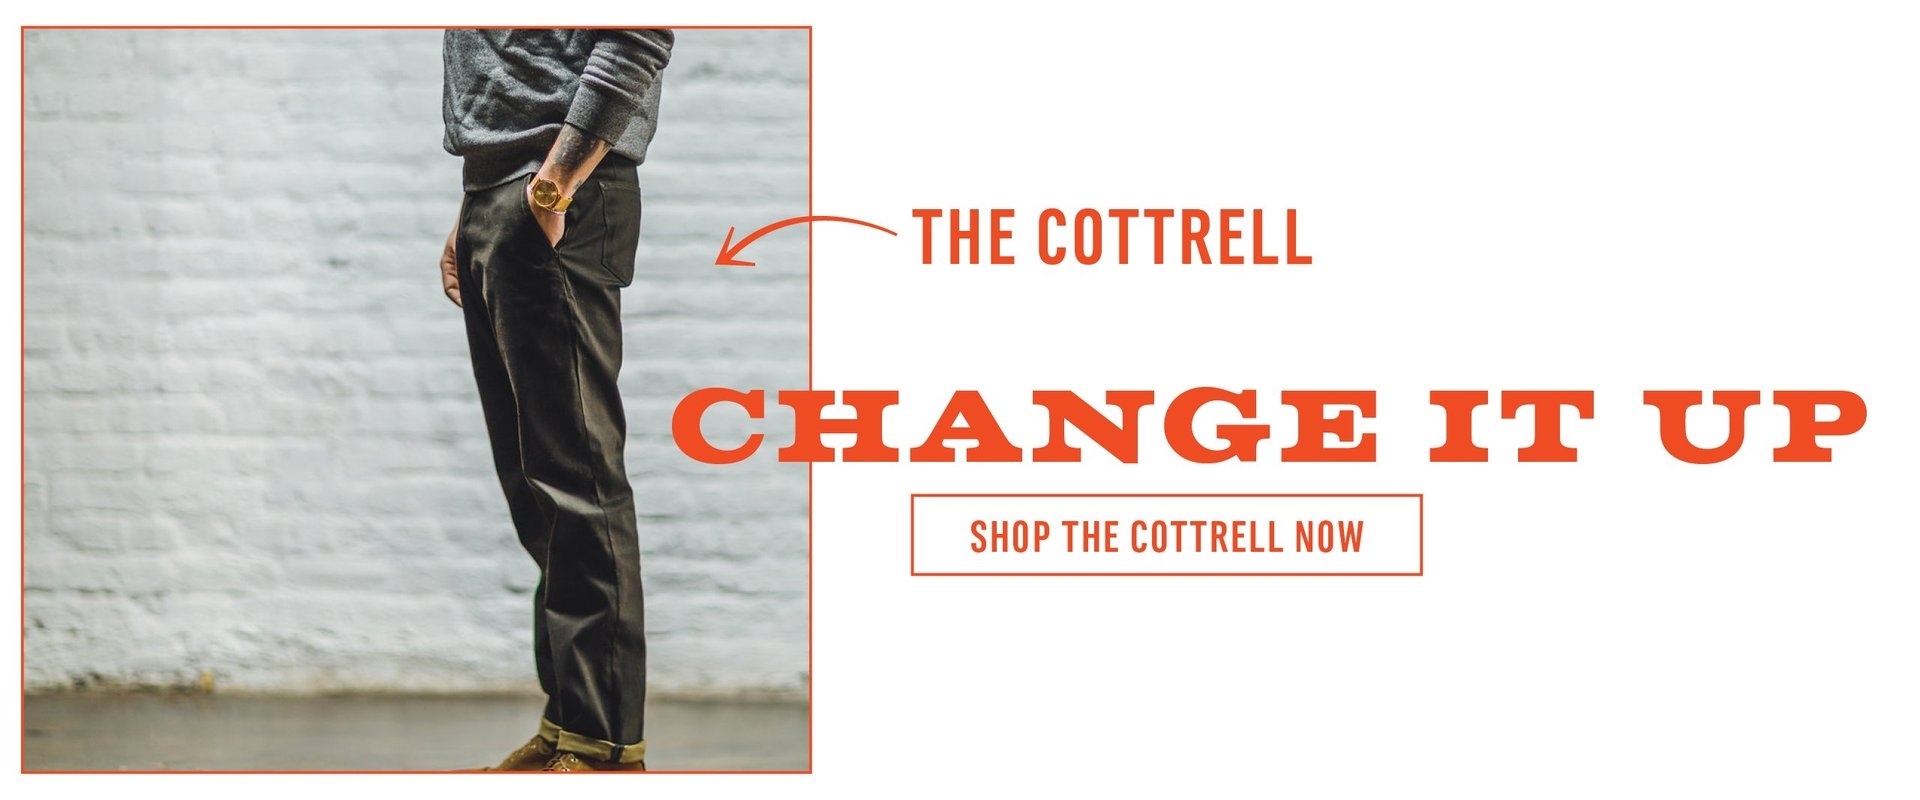 The Cottrell